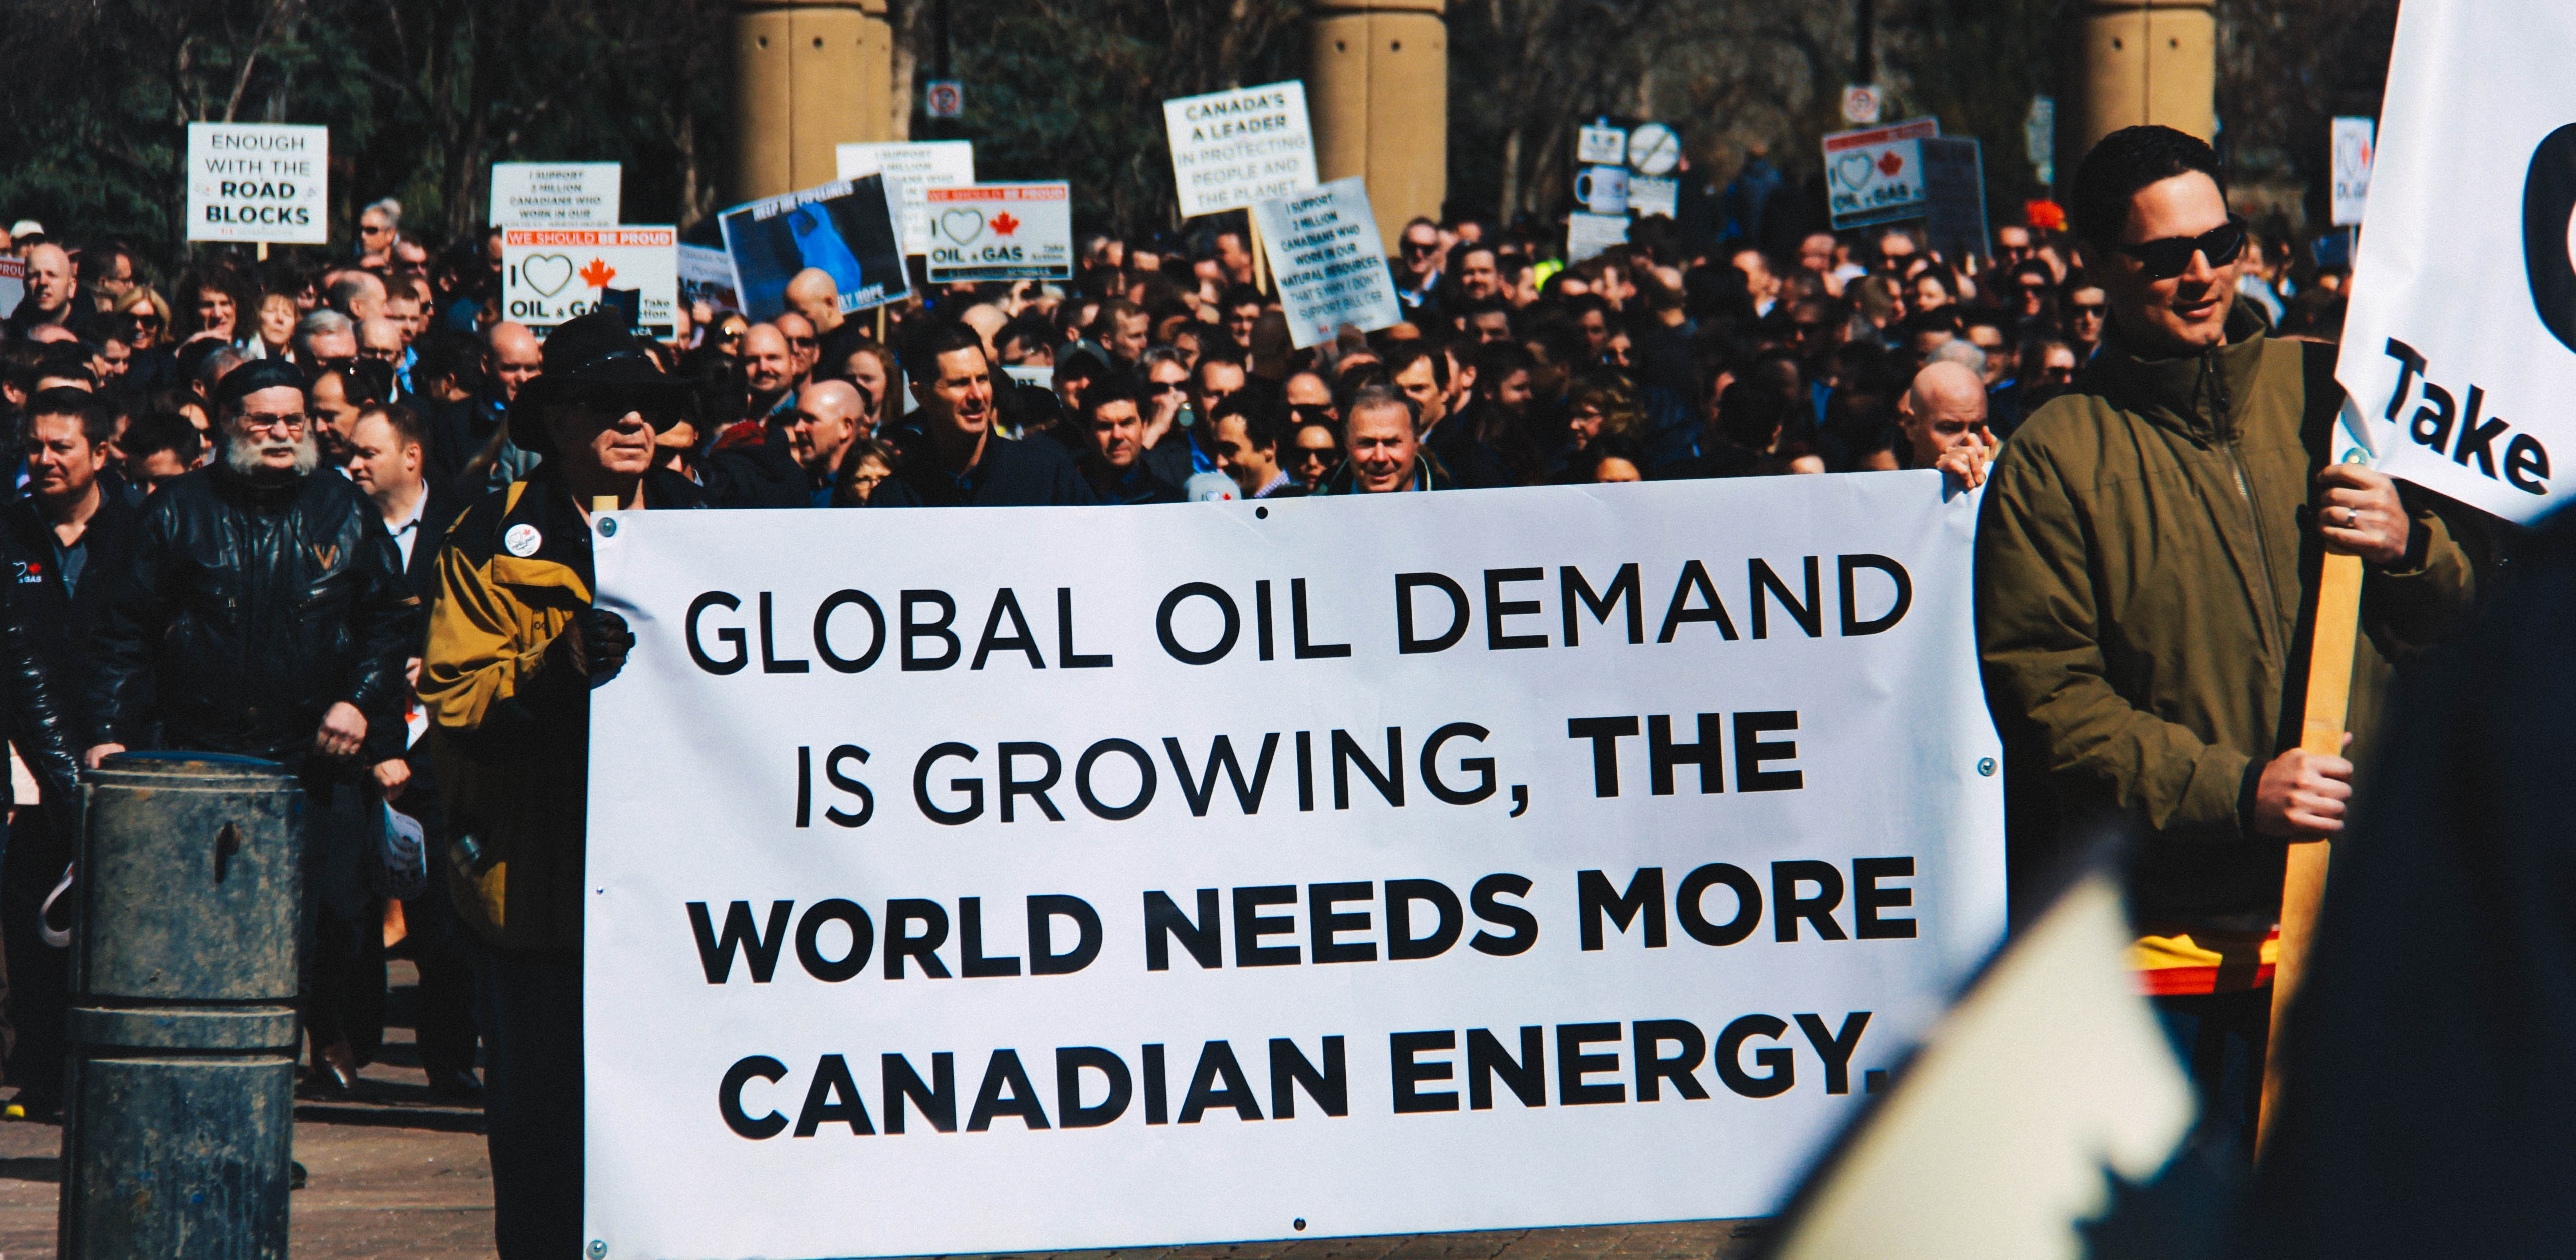 global oil demand is growing poster pro resource rally